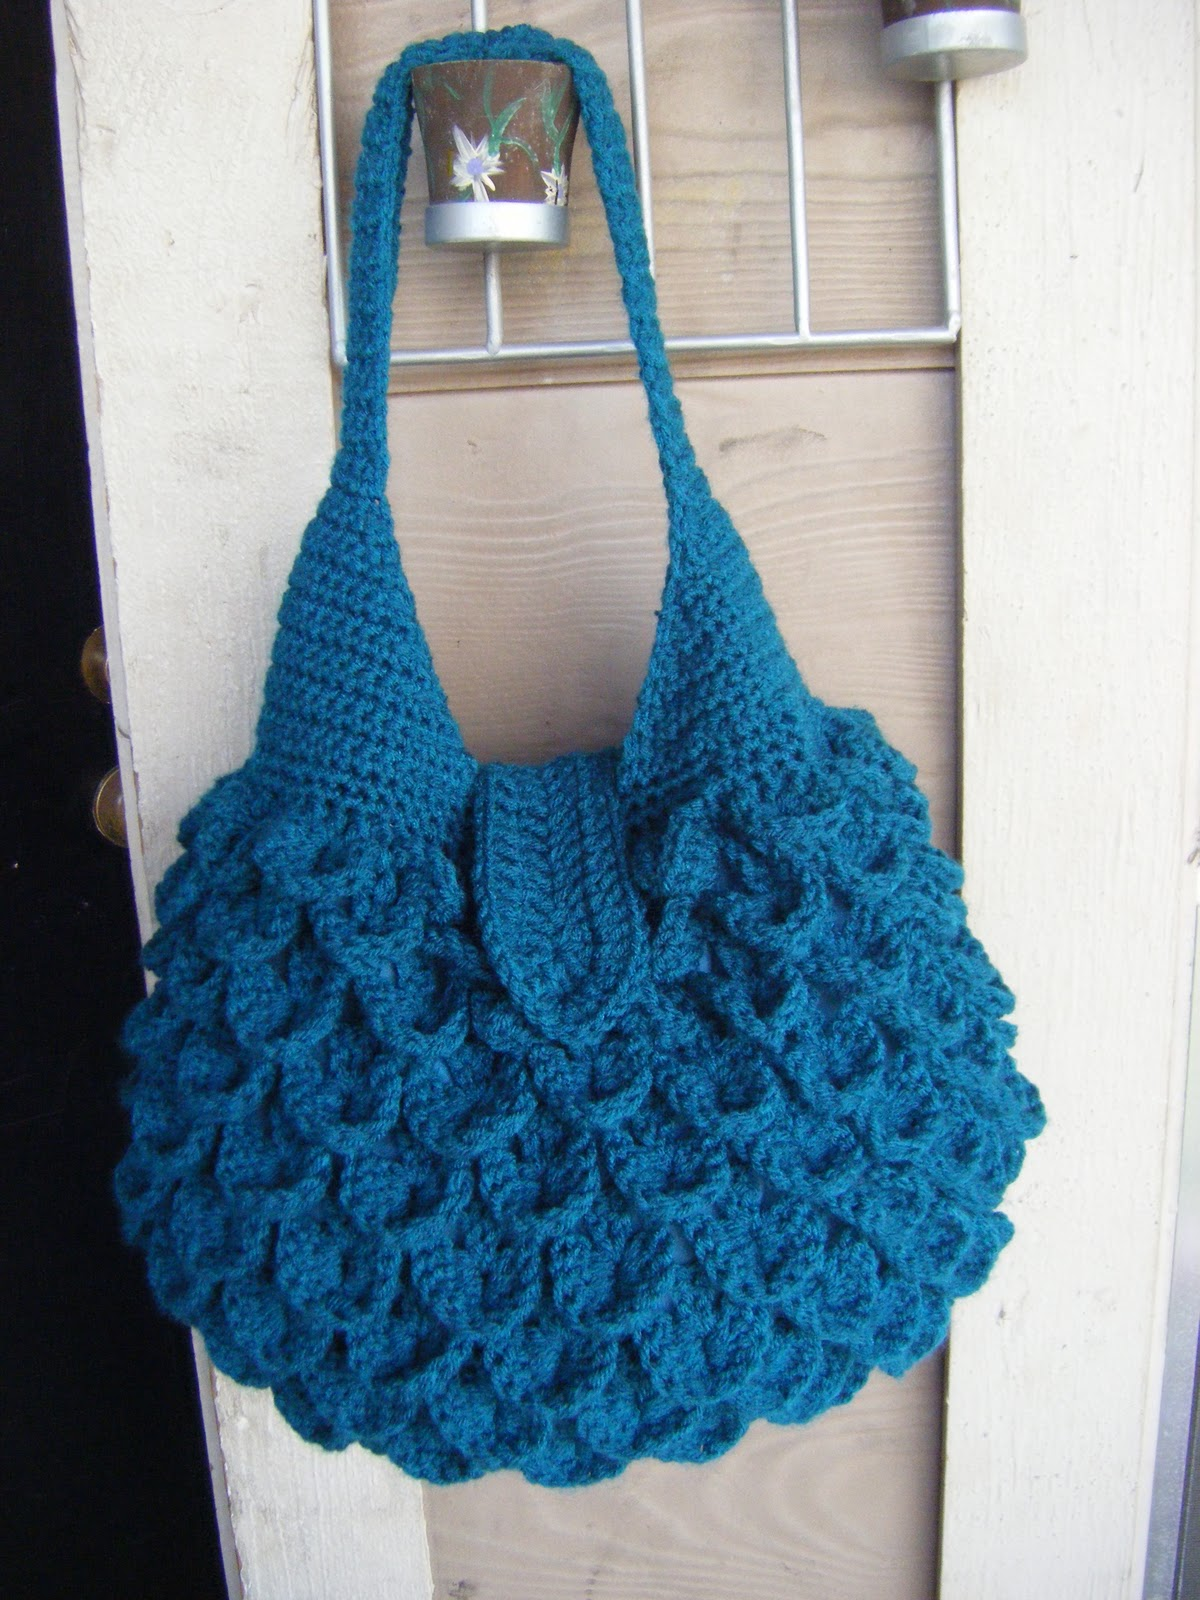 Crochet Tote Bag Free Pattern : Free cat schoolbag crochet pattern ~ Amigurumi crochet patterns